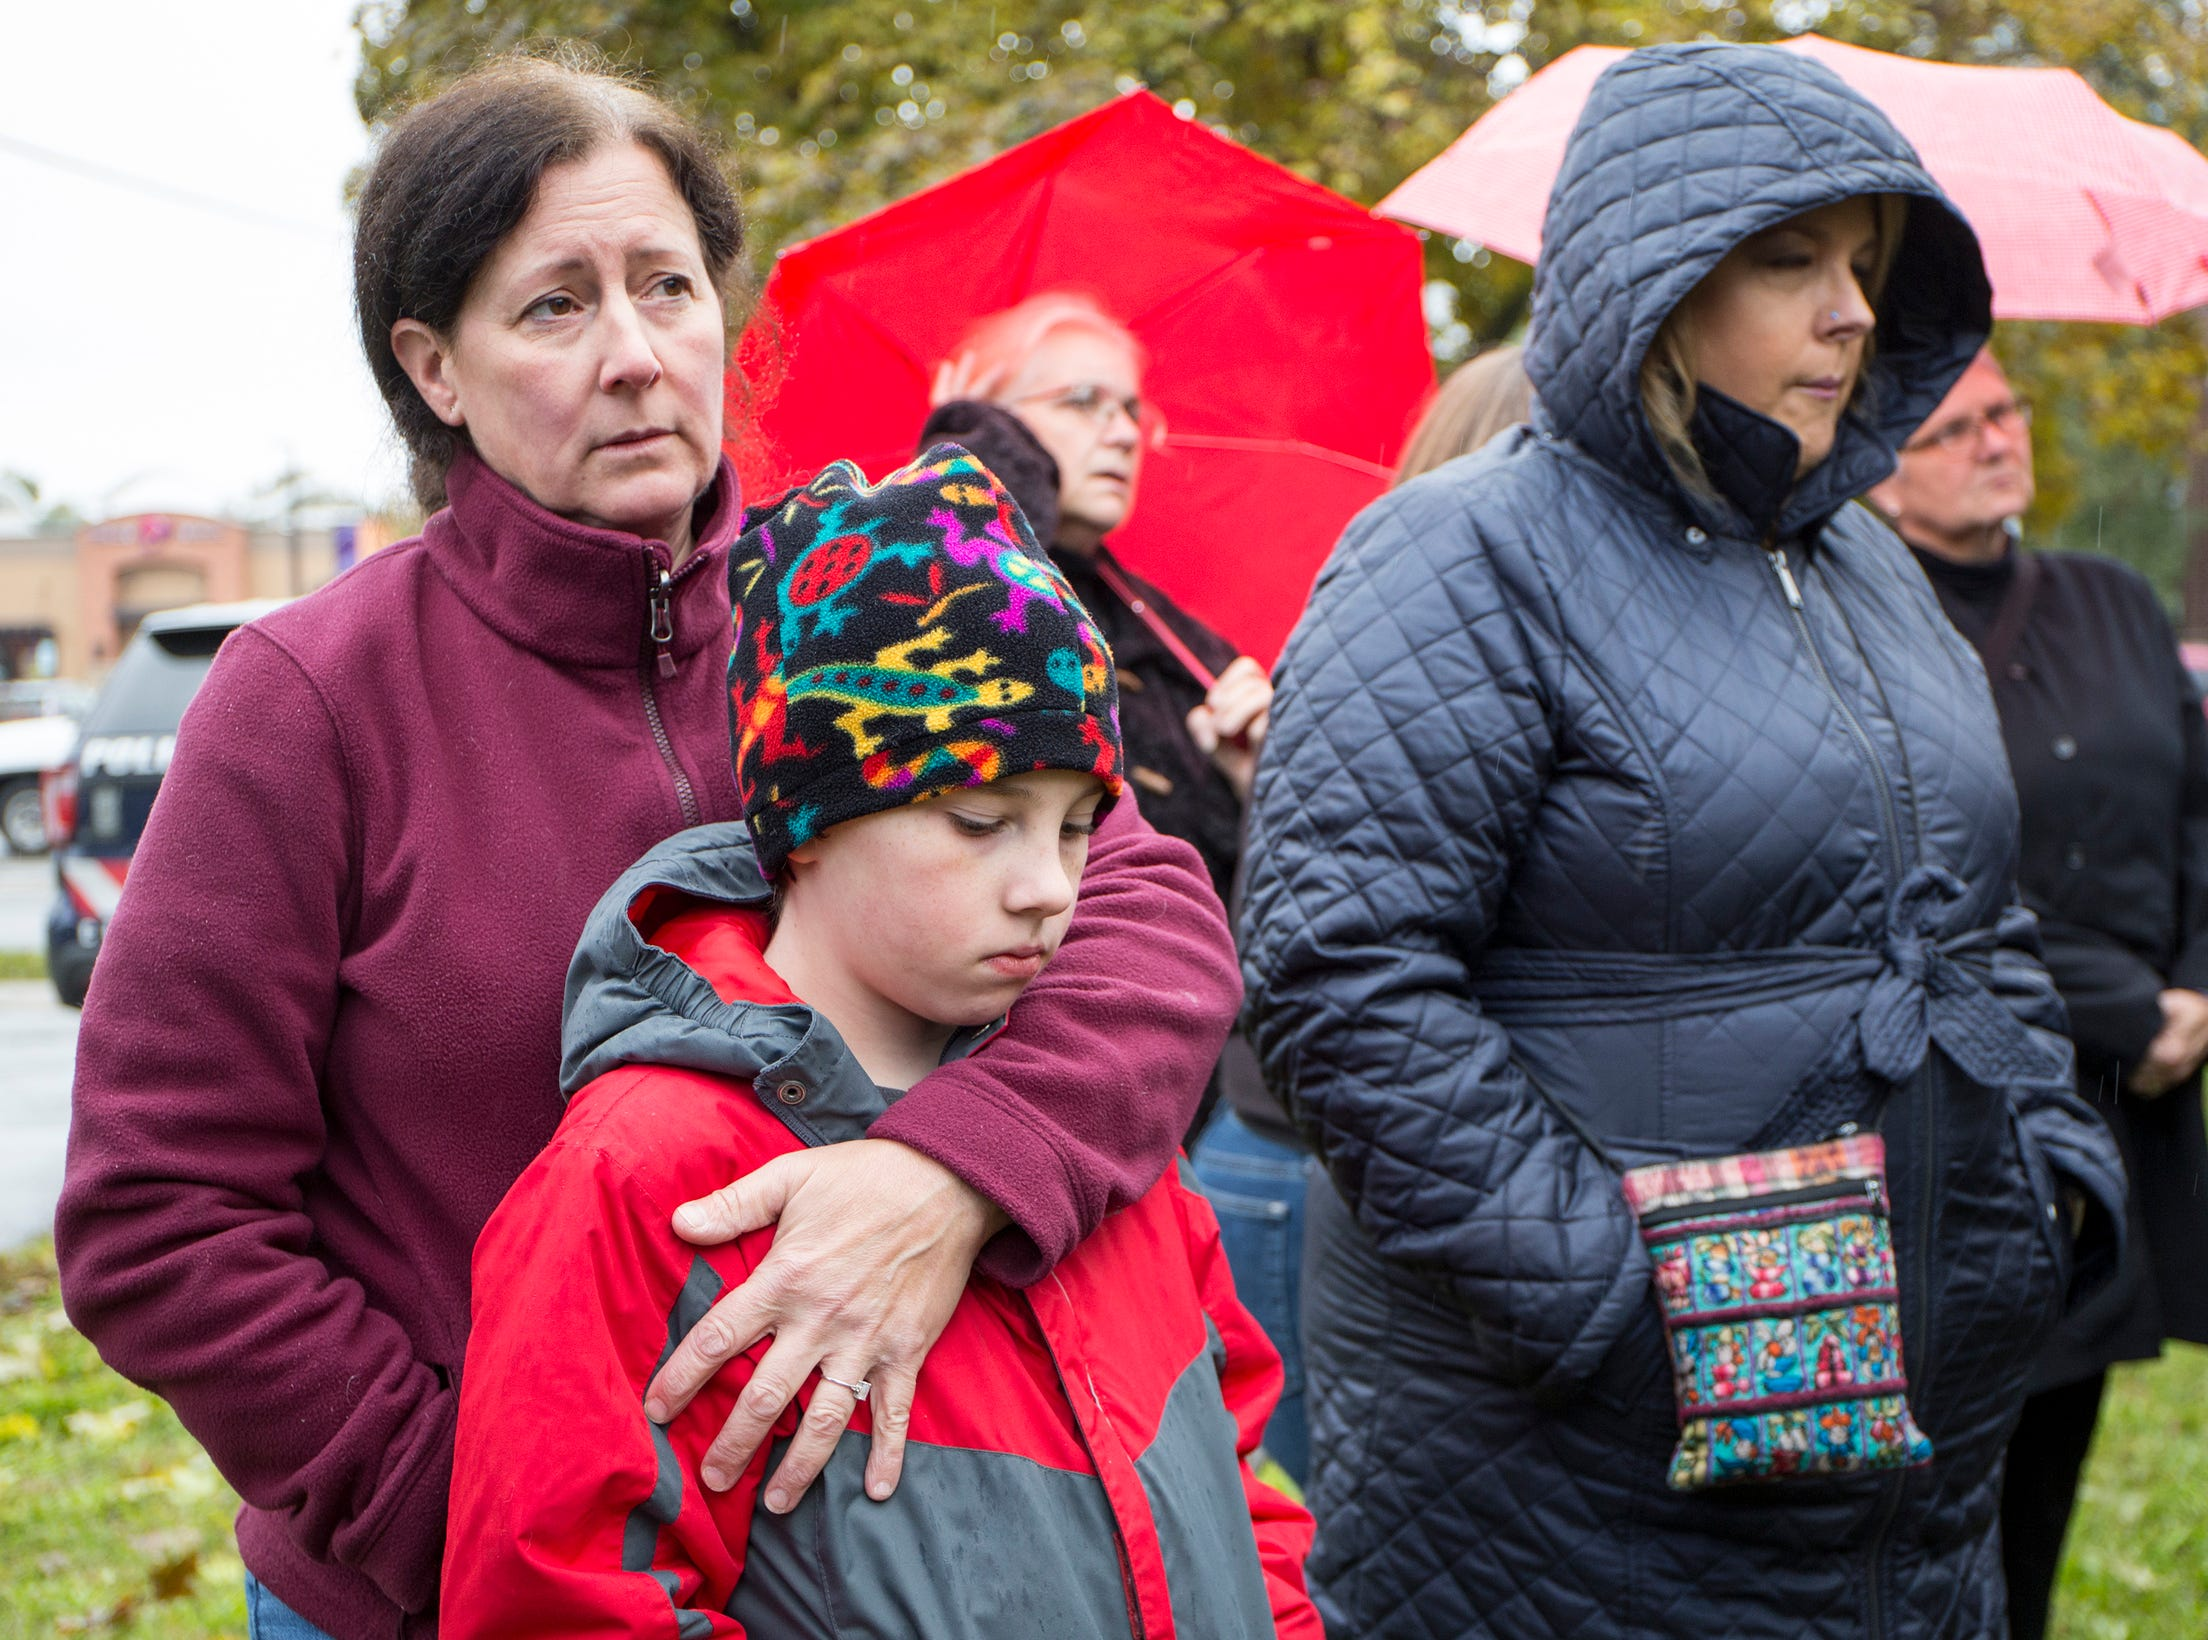 From left, Liz Schiffer, 55 and her son Michael Trombley, 10 of Ferndale, gather with others during a vigil, in honor of 11 people who were killed during a mass shooting in Pittsburgh, at Jewish Ferndale in Ferndale, Mich., Sunday, Oct. 28, 2018.